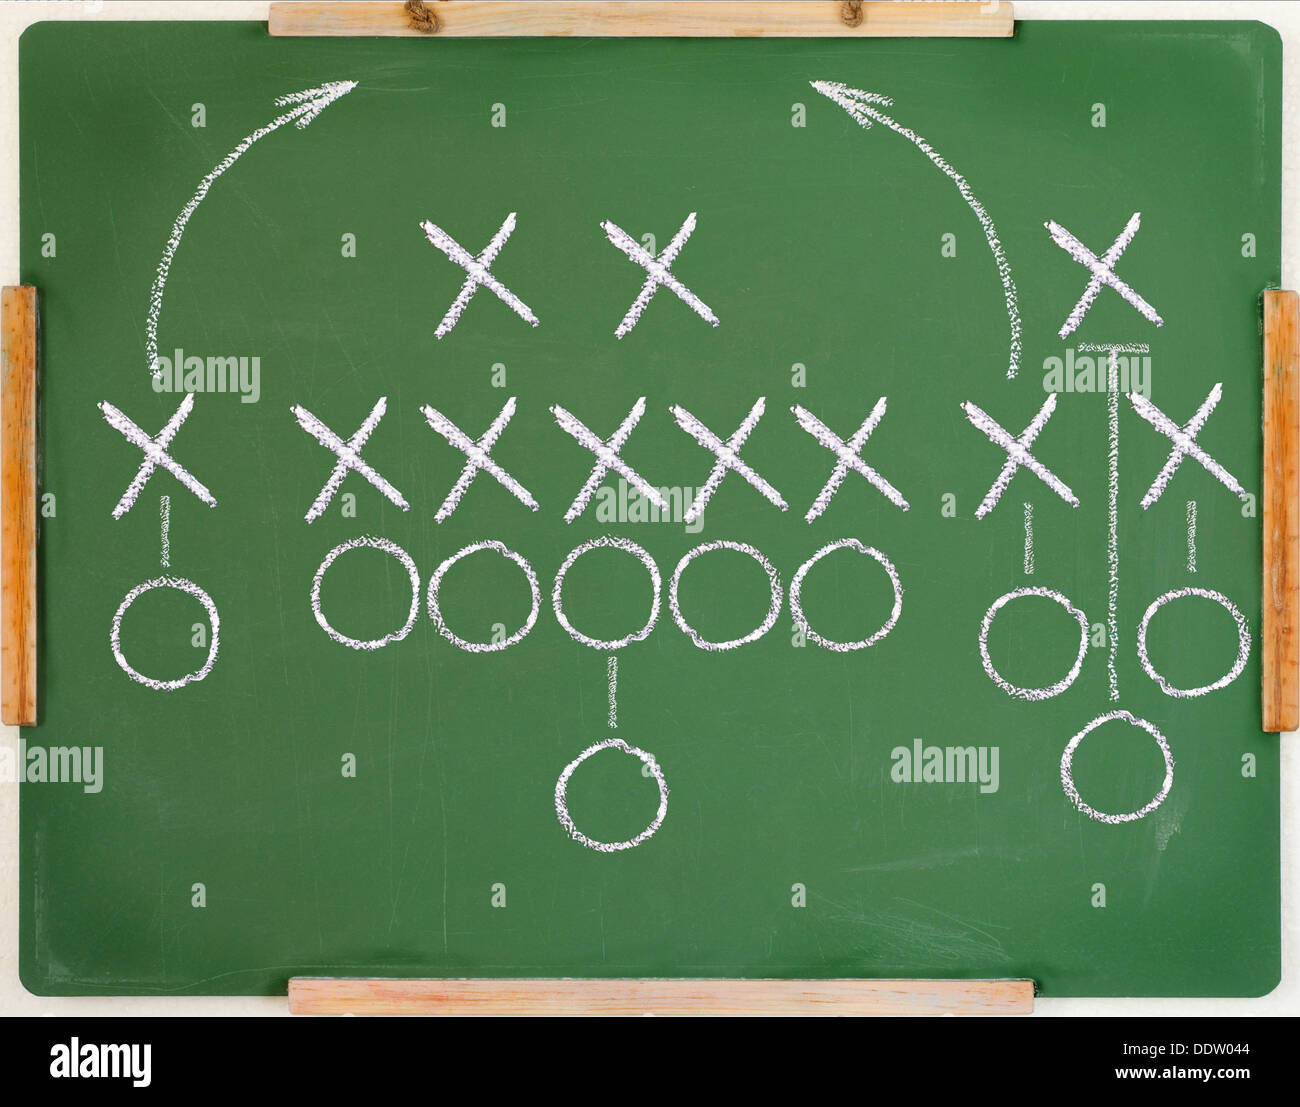 An American Football Play Diagram On A Green Chalkboard Stock Photo